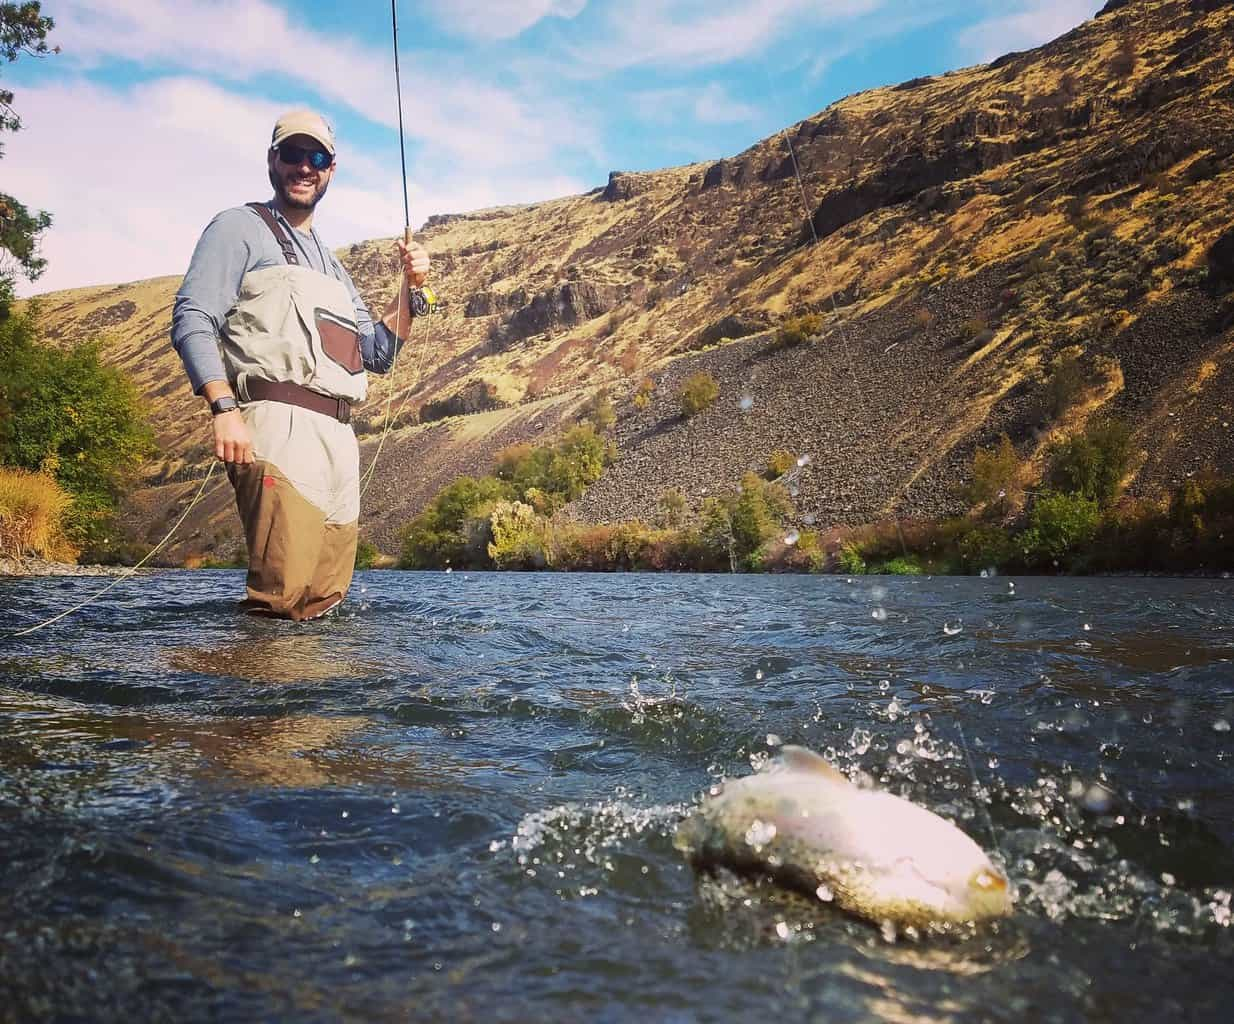 A fly angler landing a trout on the Yakima River.